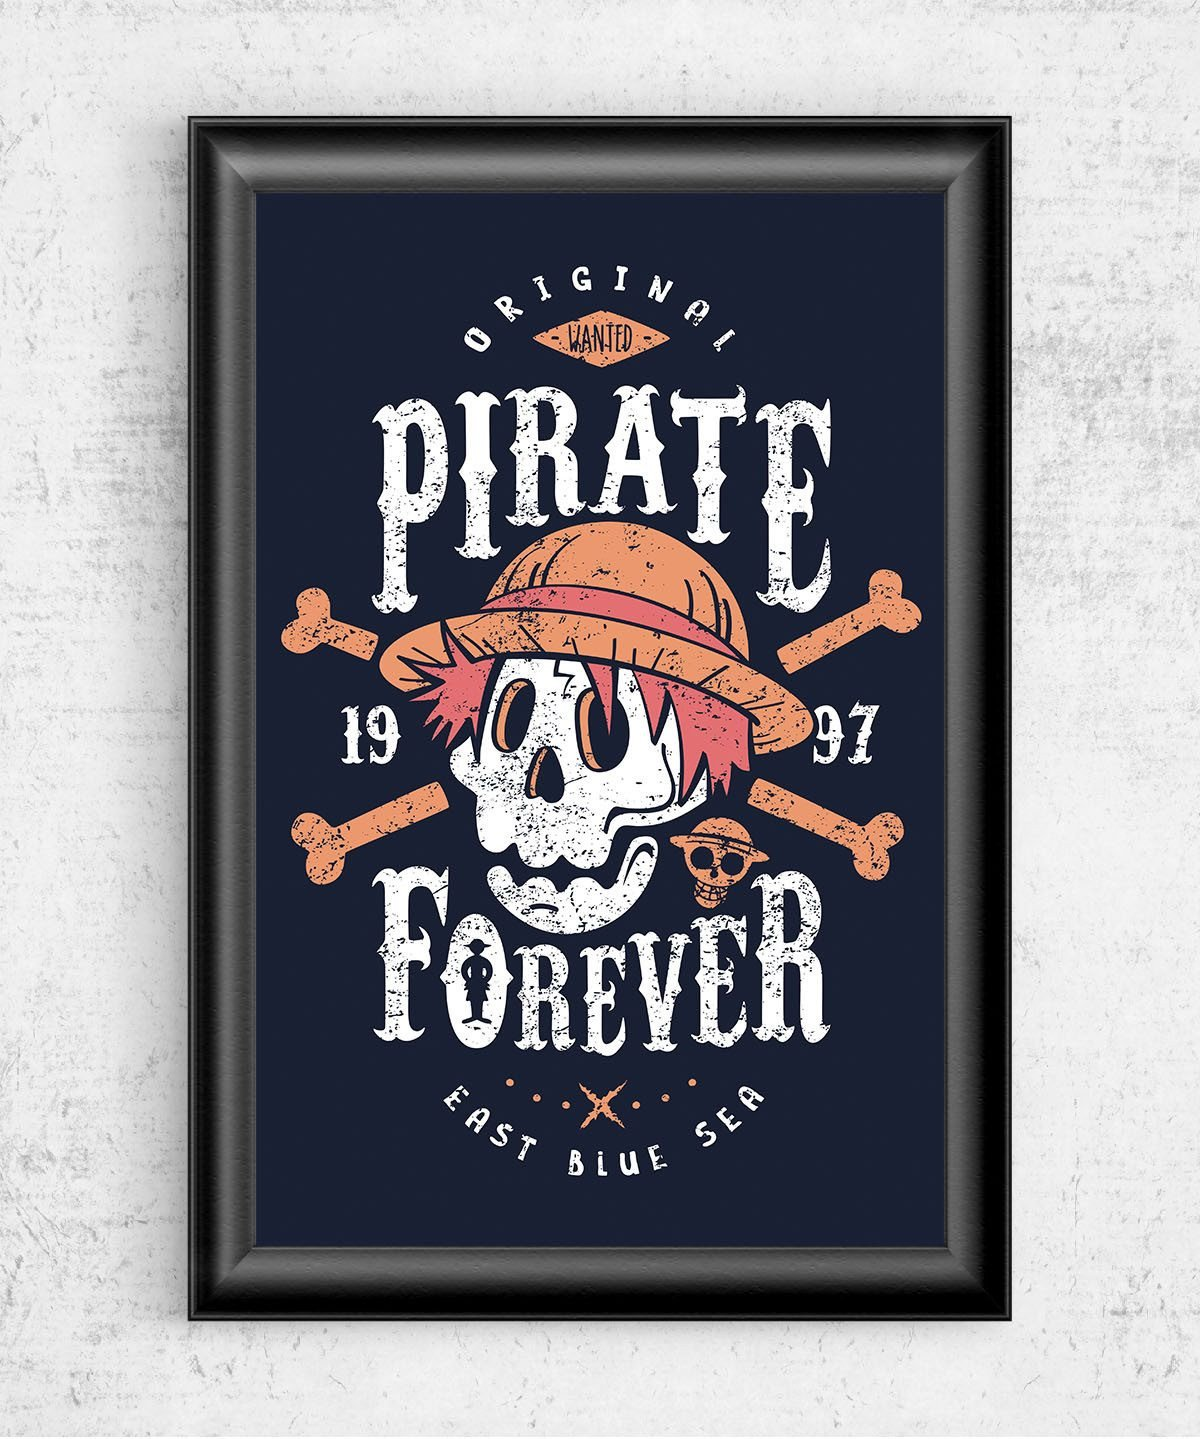 Wanted Pirate Forever Posters by Olipop - Pixel Empire